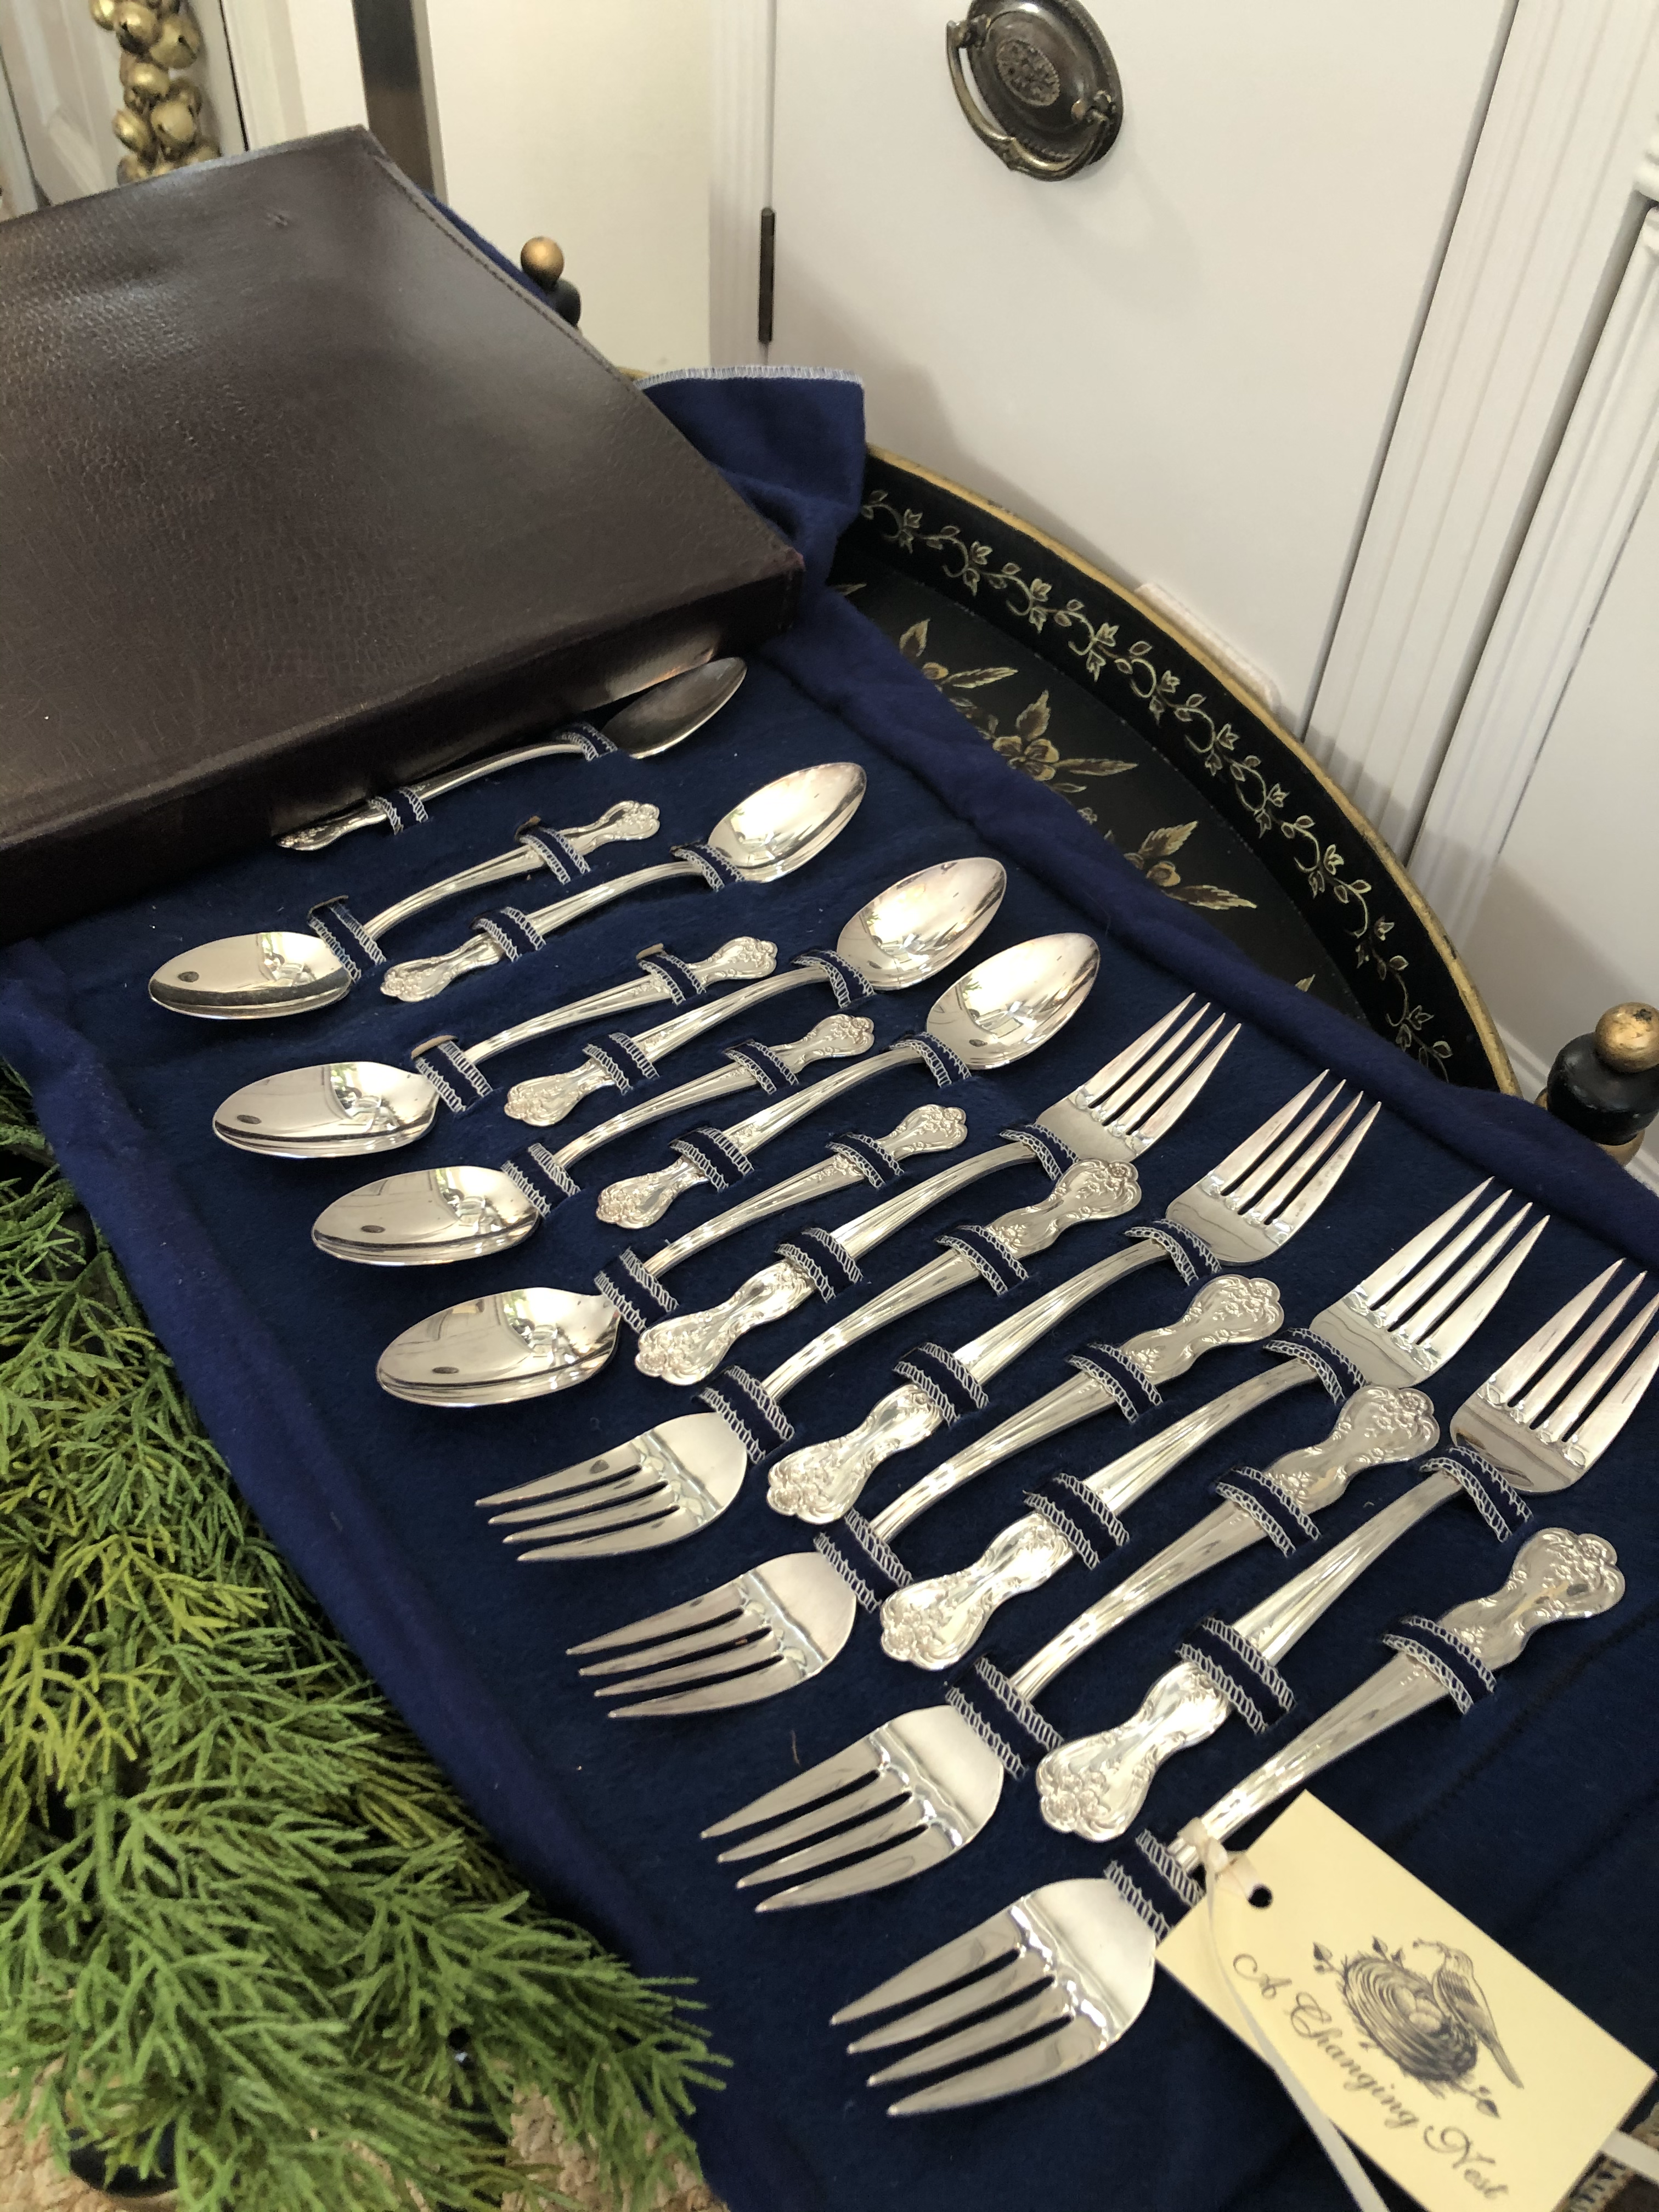 Silver Plate Cutlery Set